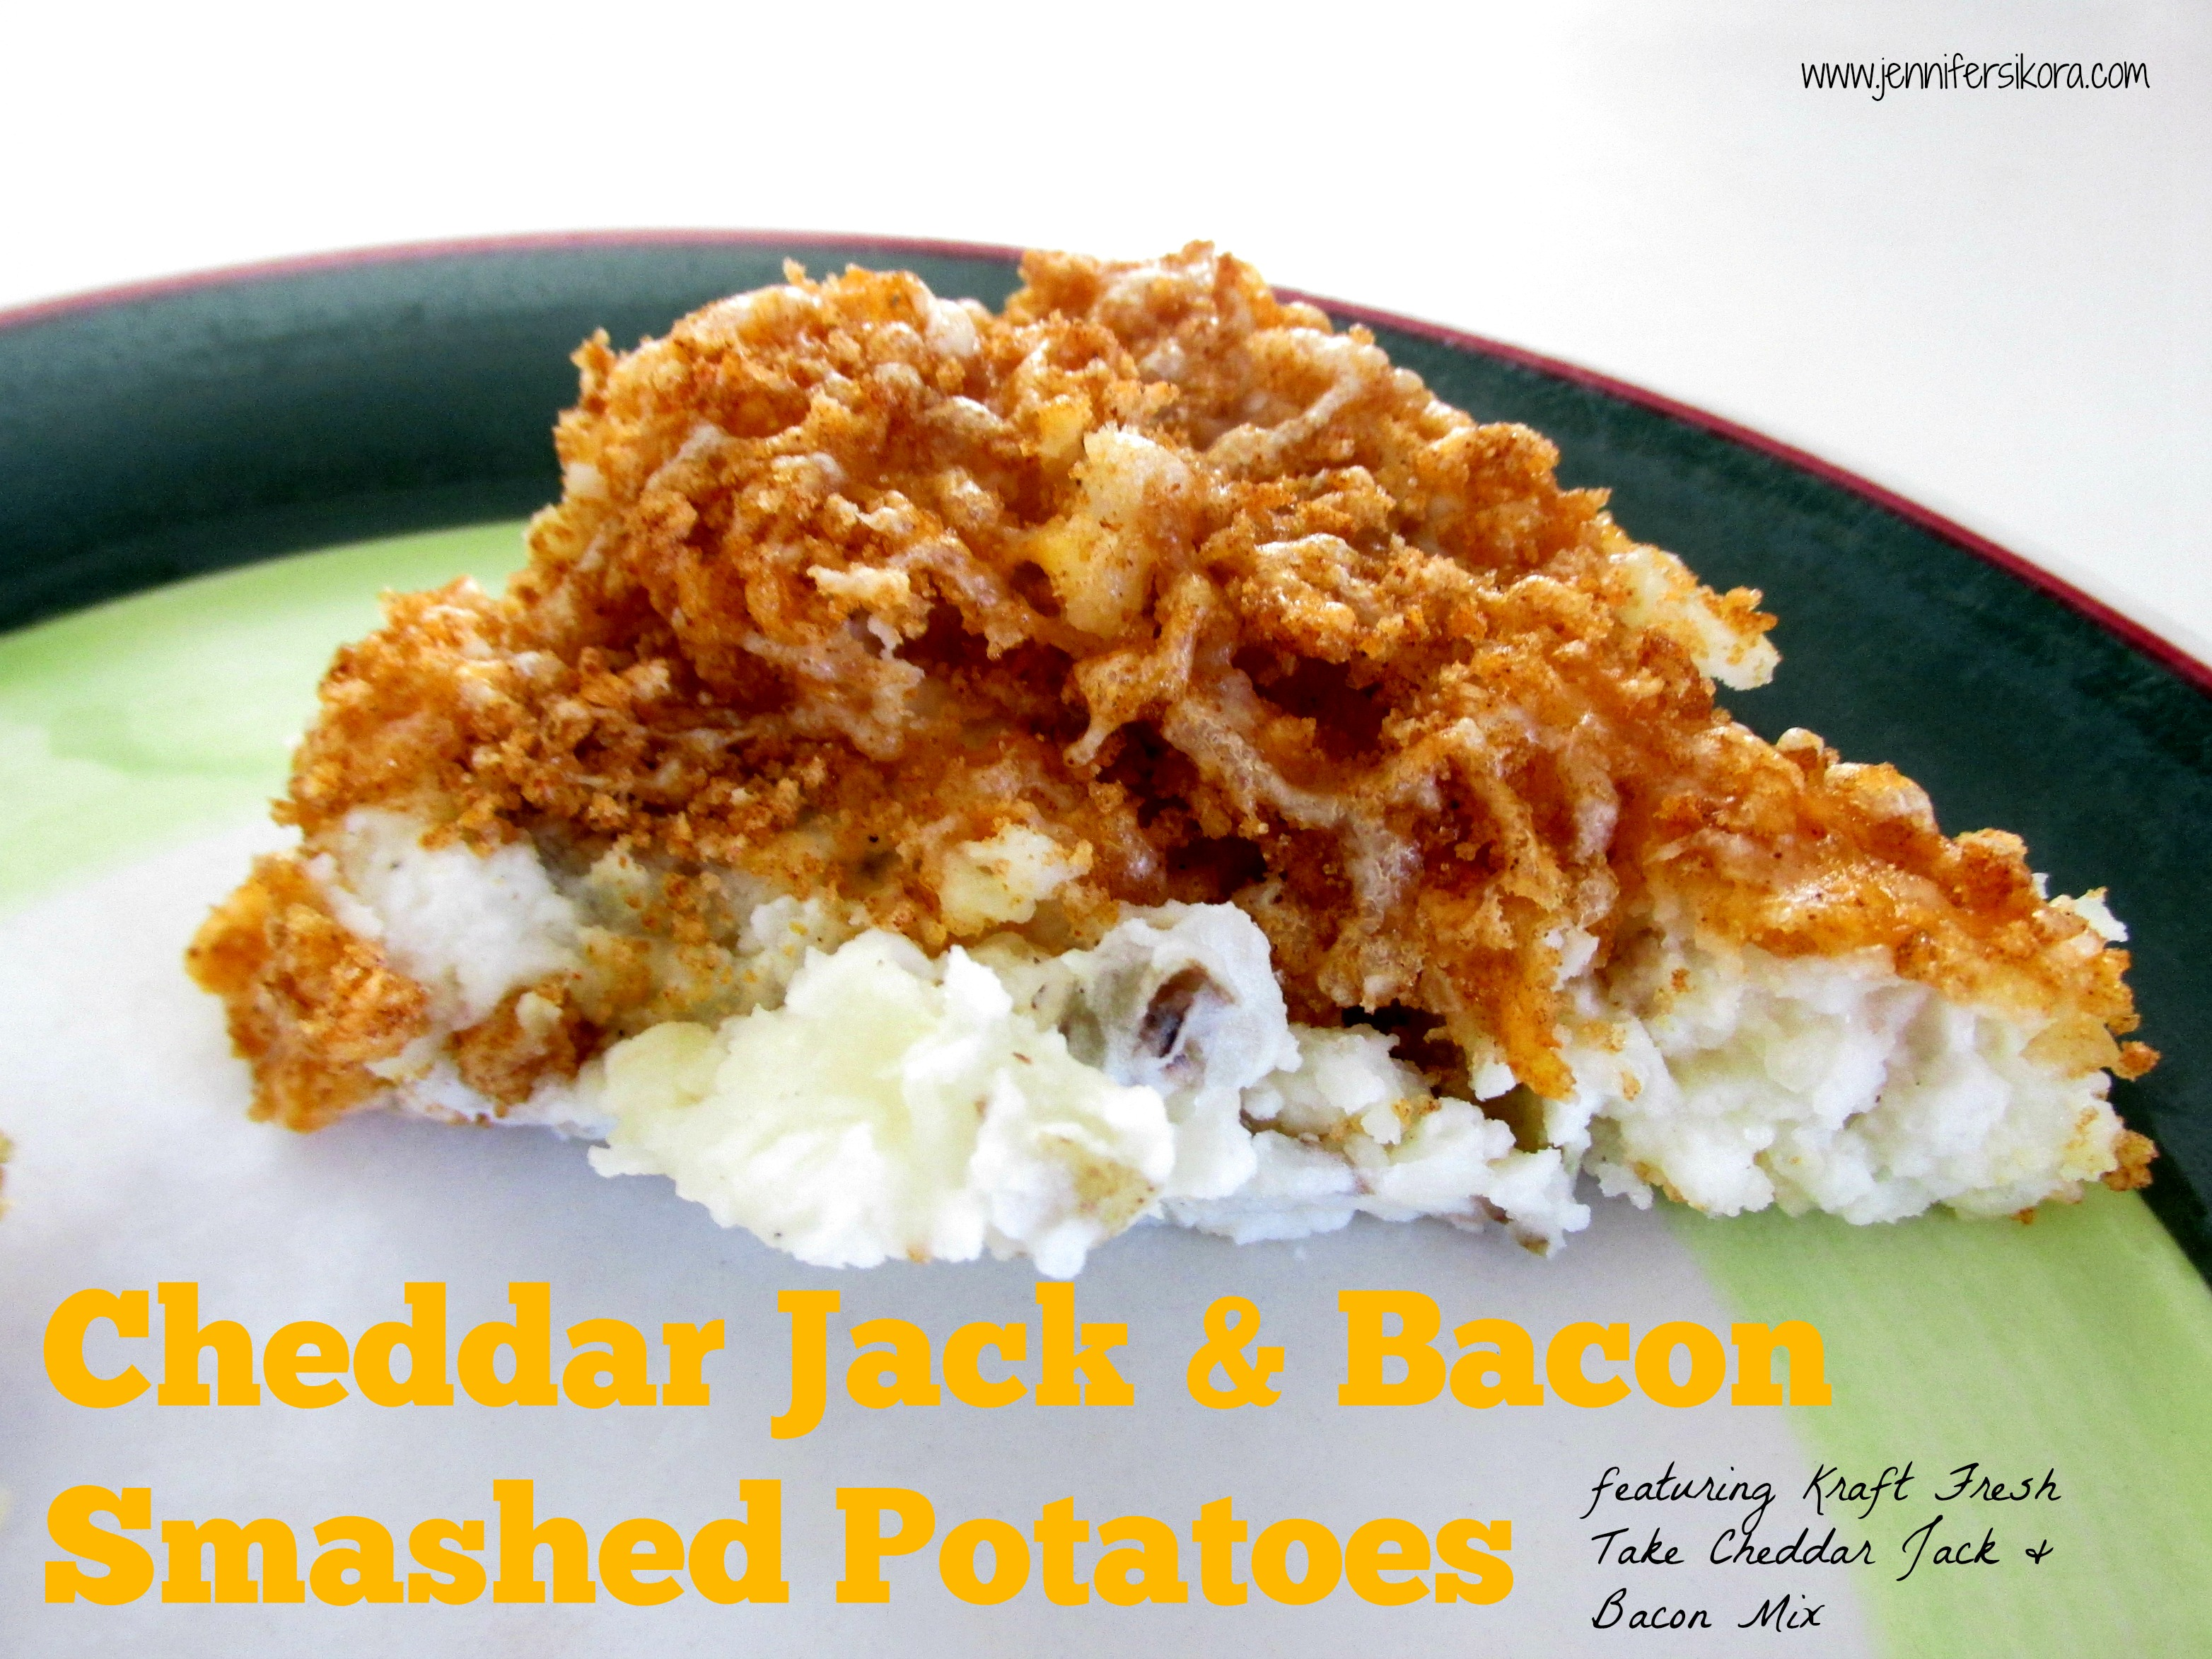 Enjoy Yourself Cooking Easter Dinner Using Kraft Fresh Take + a Yummy Recipe for Cheddar Jack and Bacon Smashed Potatoes#FreshTake #Shop